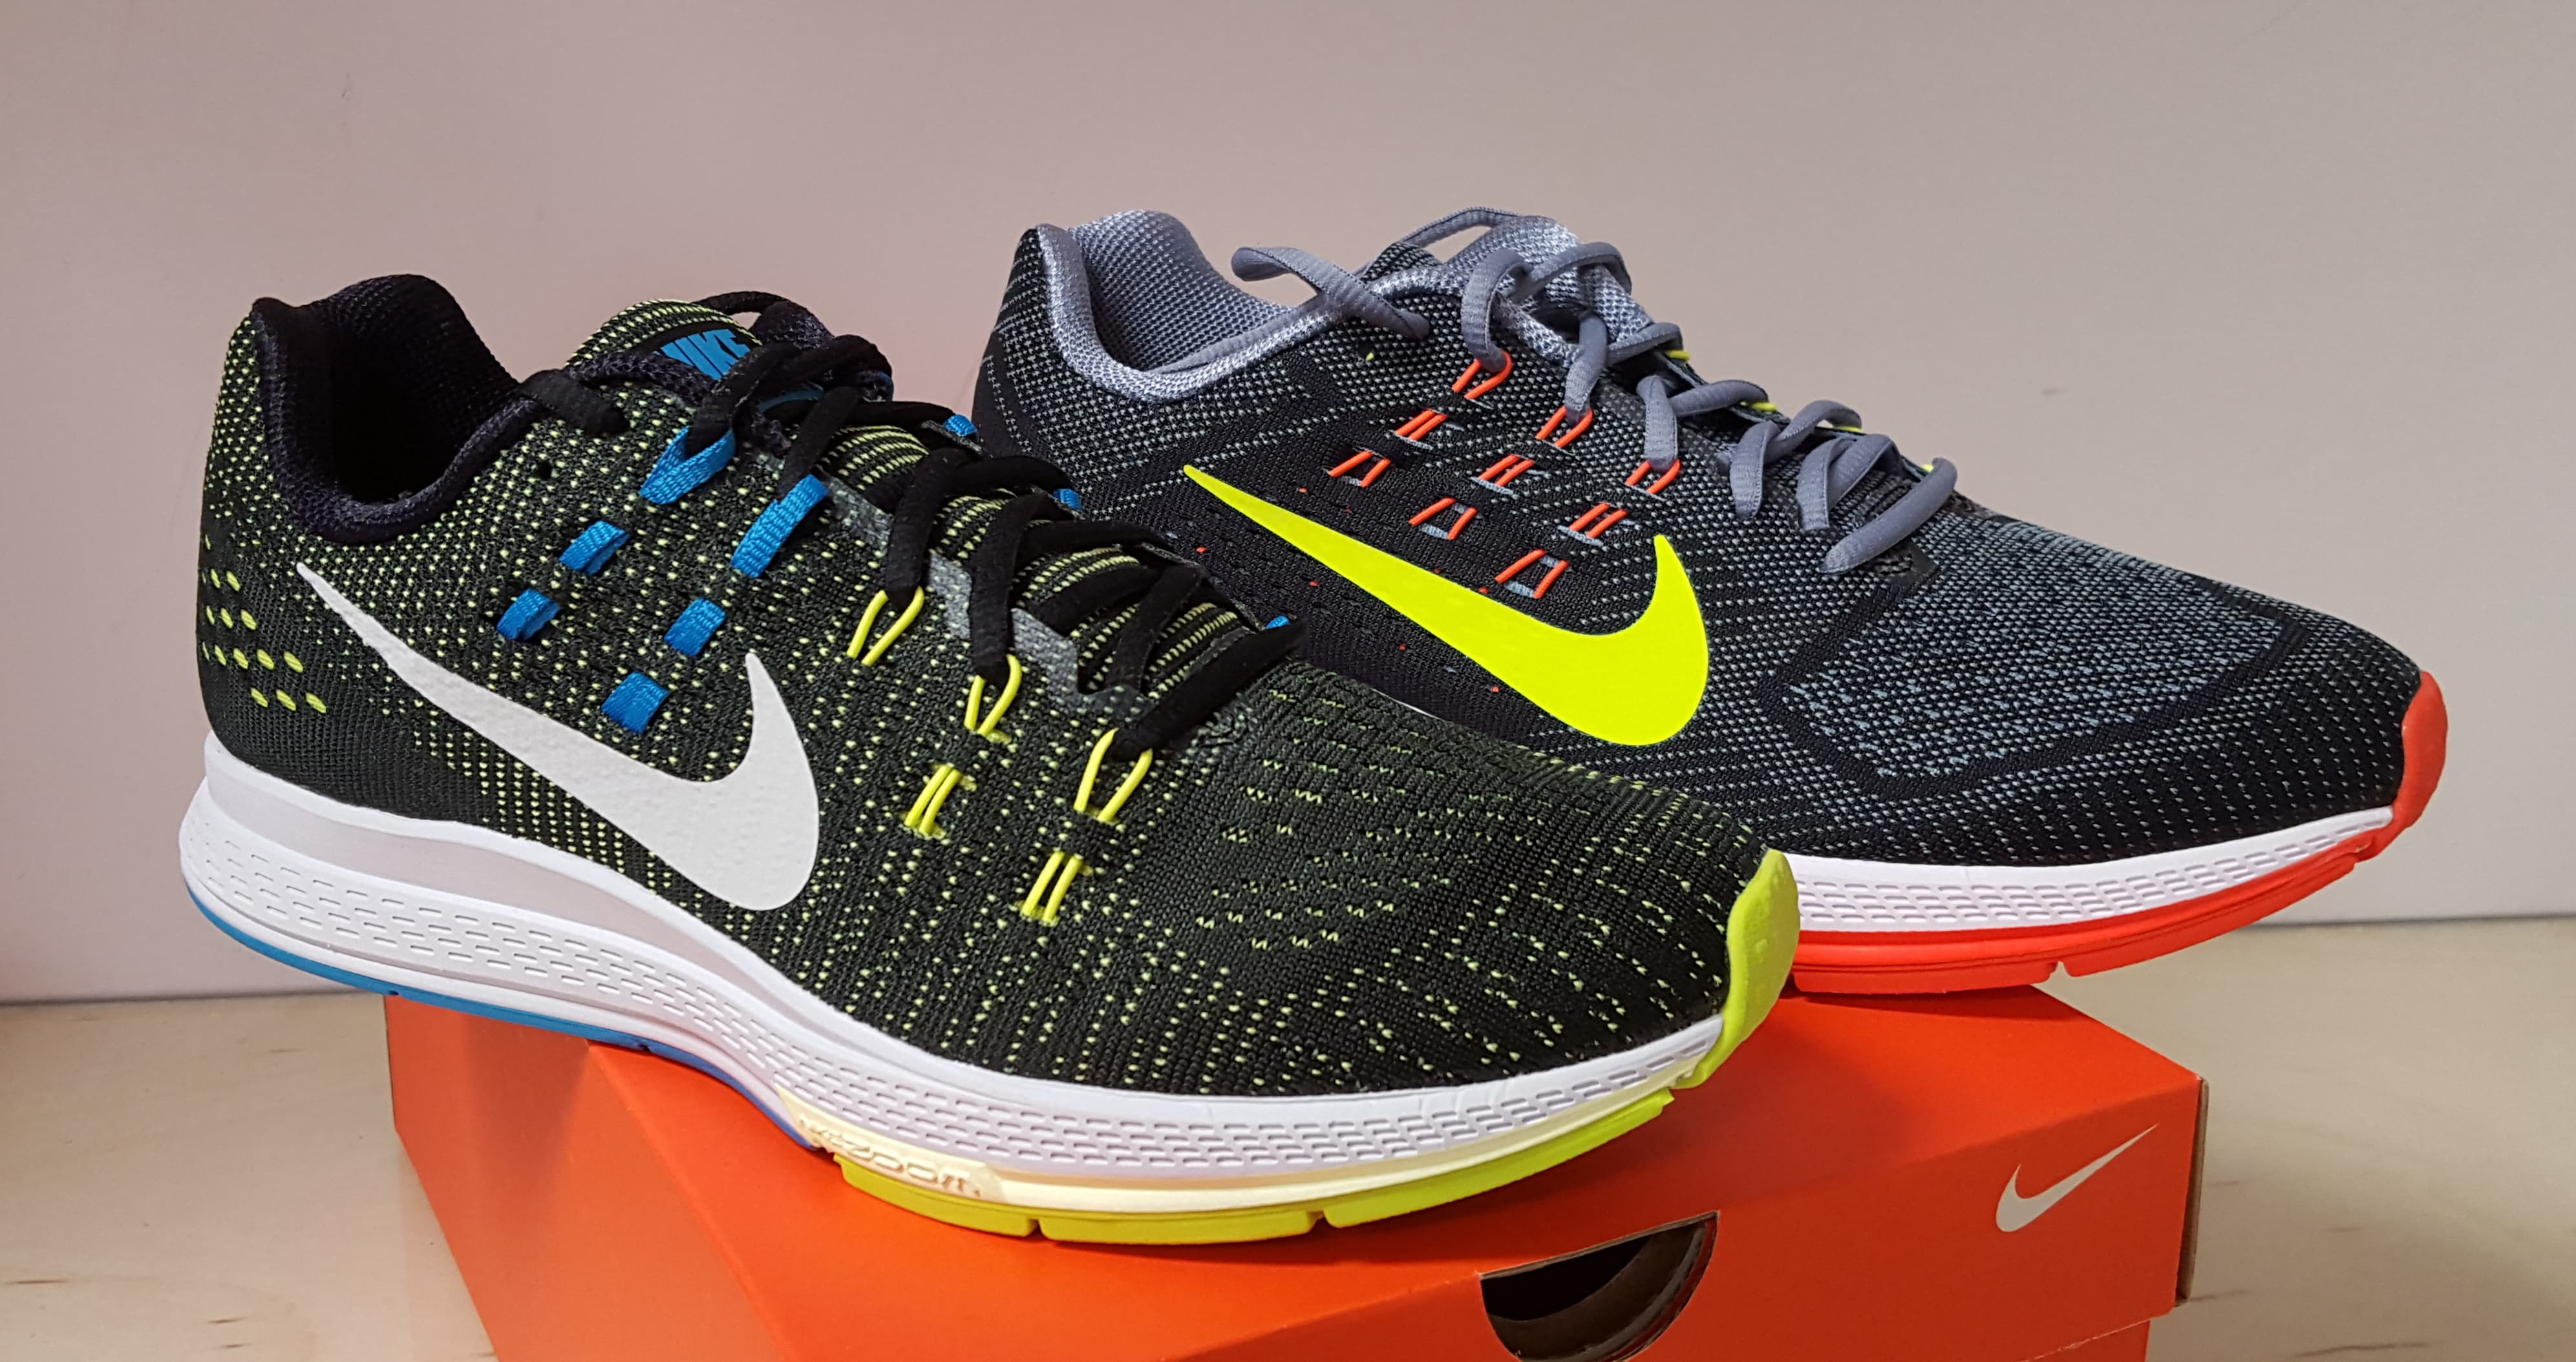 Nike Zoom Air Struttura 18 Idealogin FLVdCXv